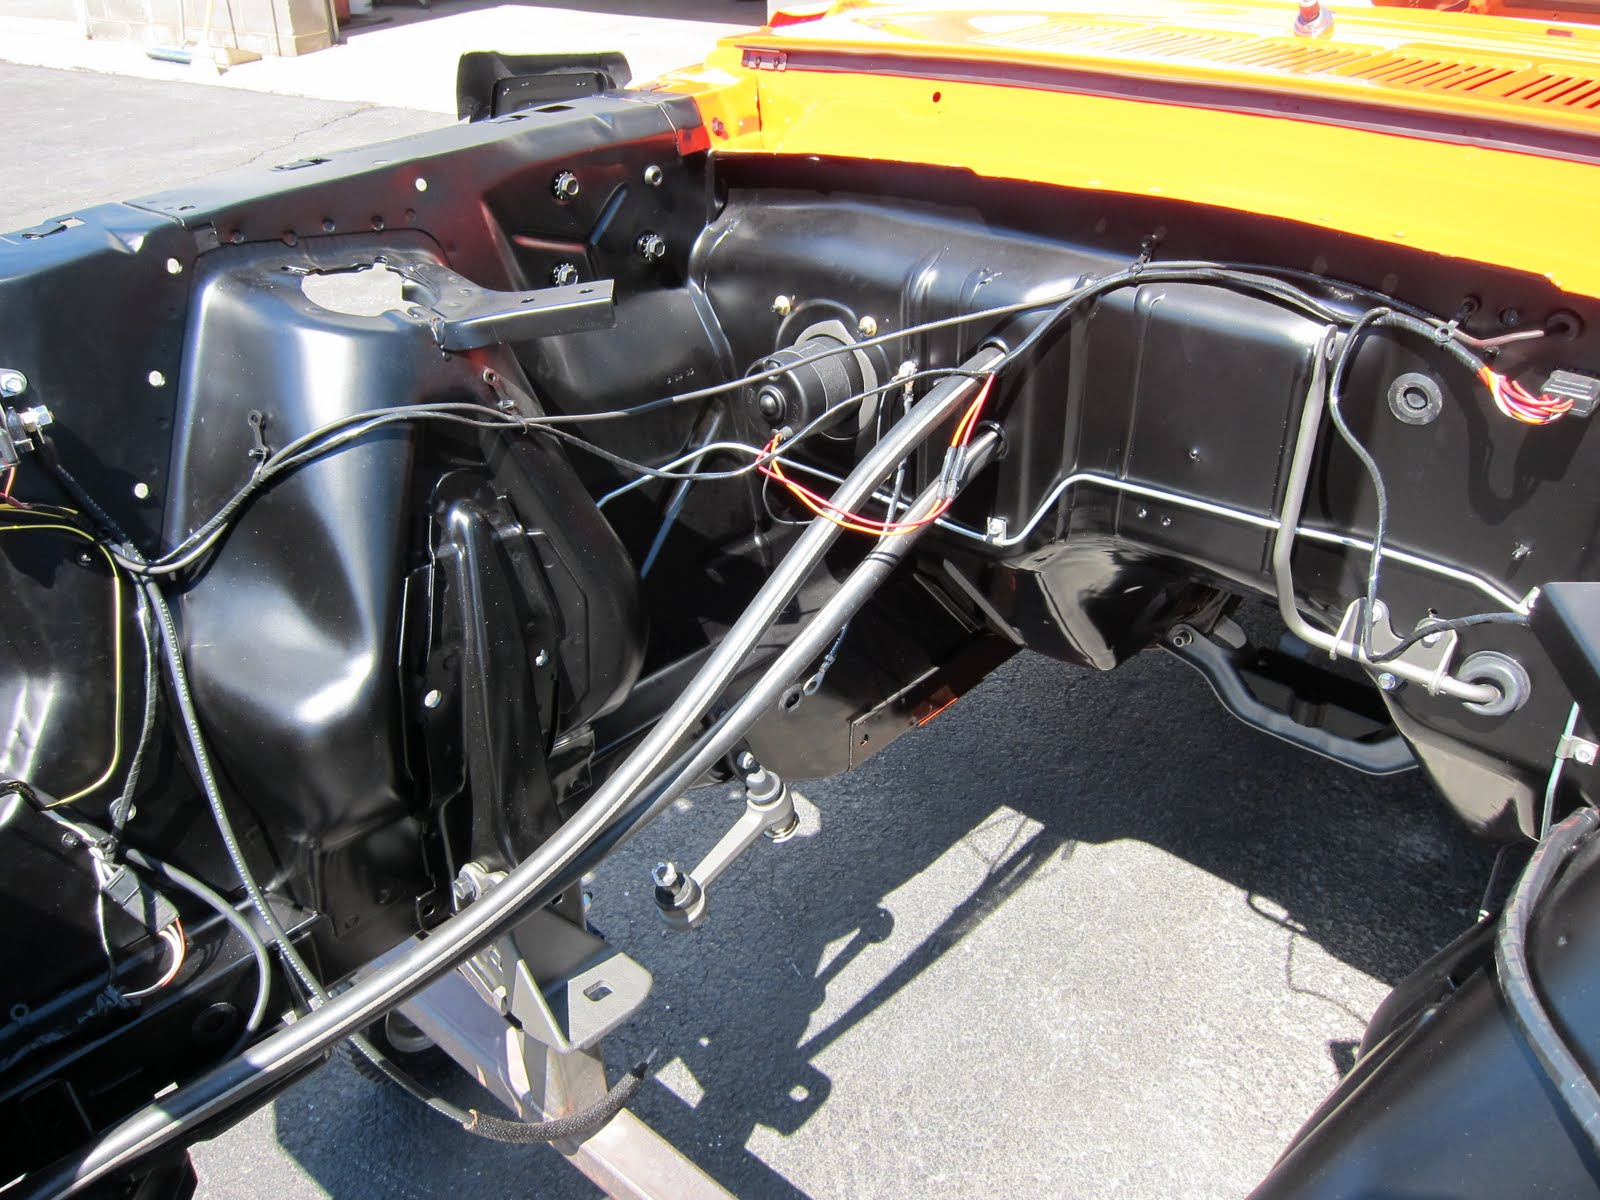 Mustang Wiring Harness On 1965 Mustang Engine Compartment Wiring